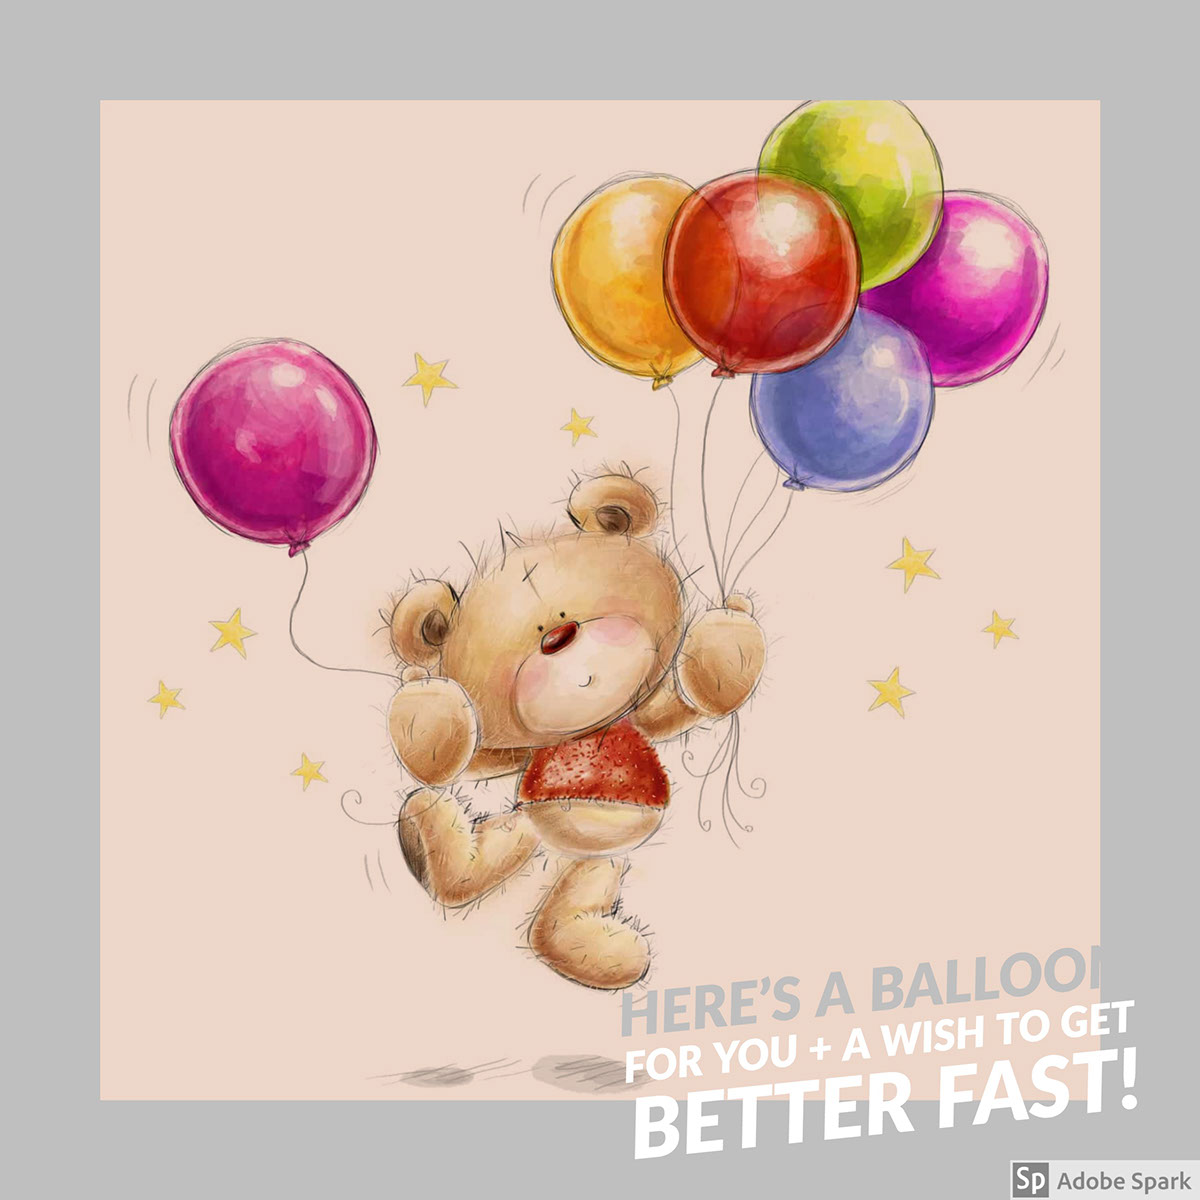 HERE'S A BALLOON for you +  a wish to get better fast! HERE'S A BALLOON for you +  a wish to get better fast!